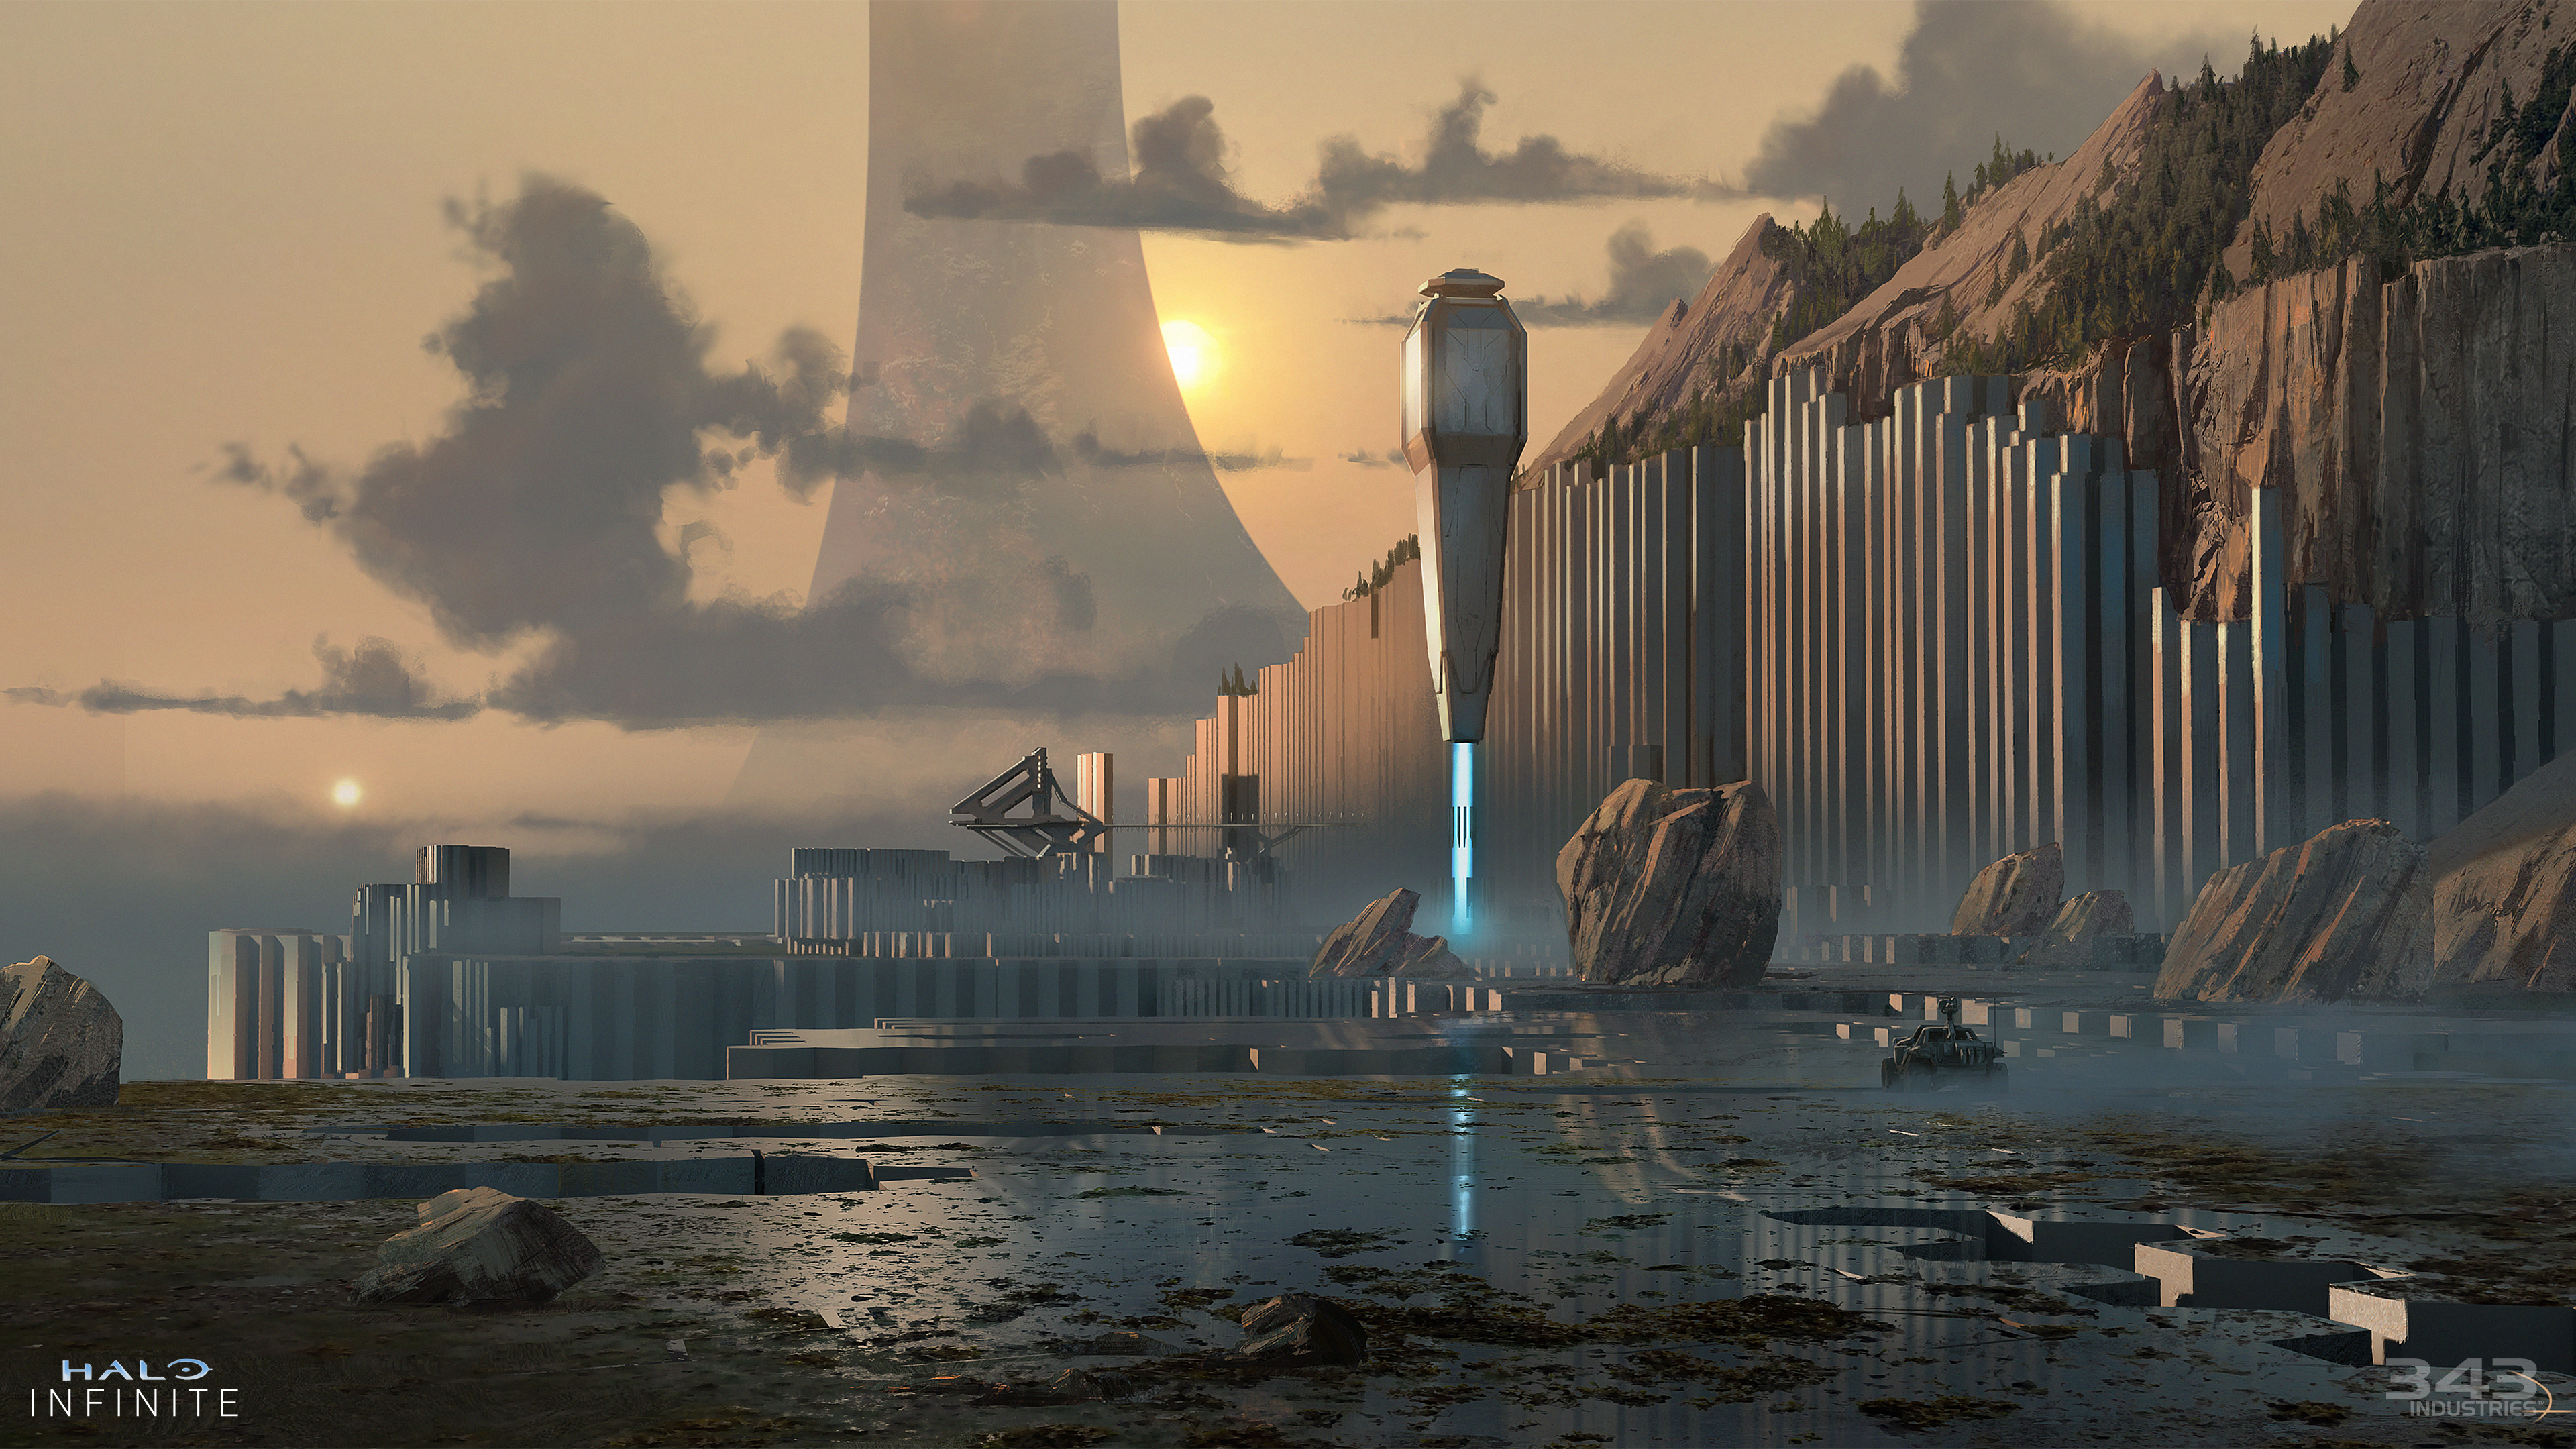 hi-campaign-concept-art-4k-4caee7b0e02b4cc5957cb8b715d247d1.png